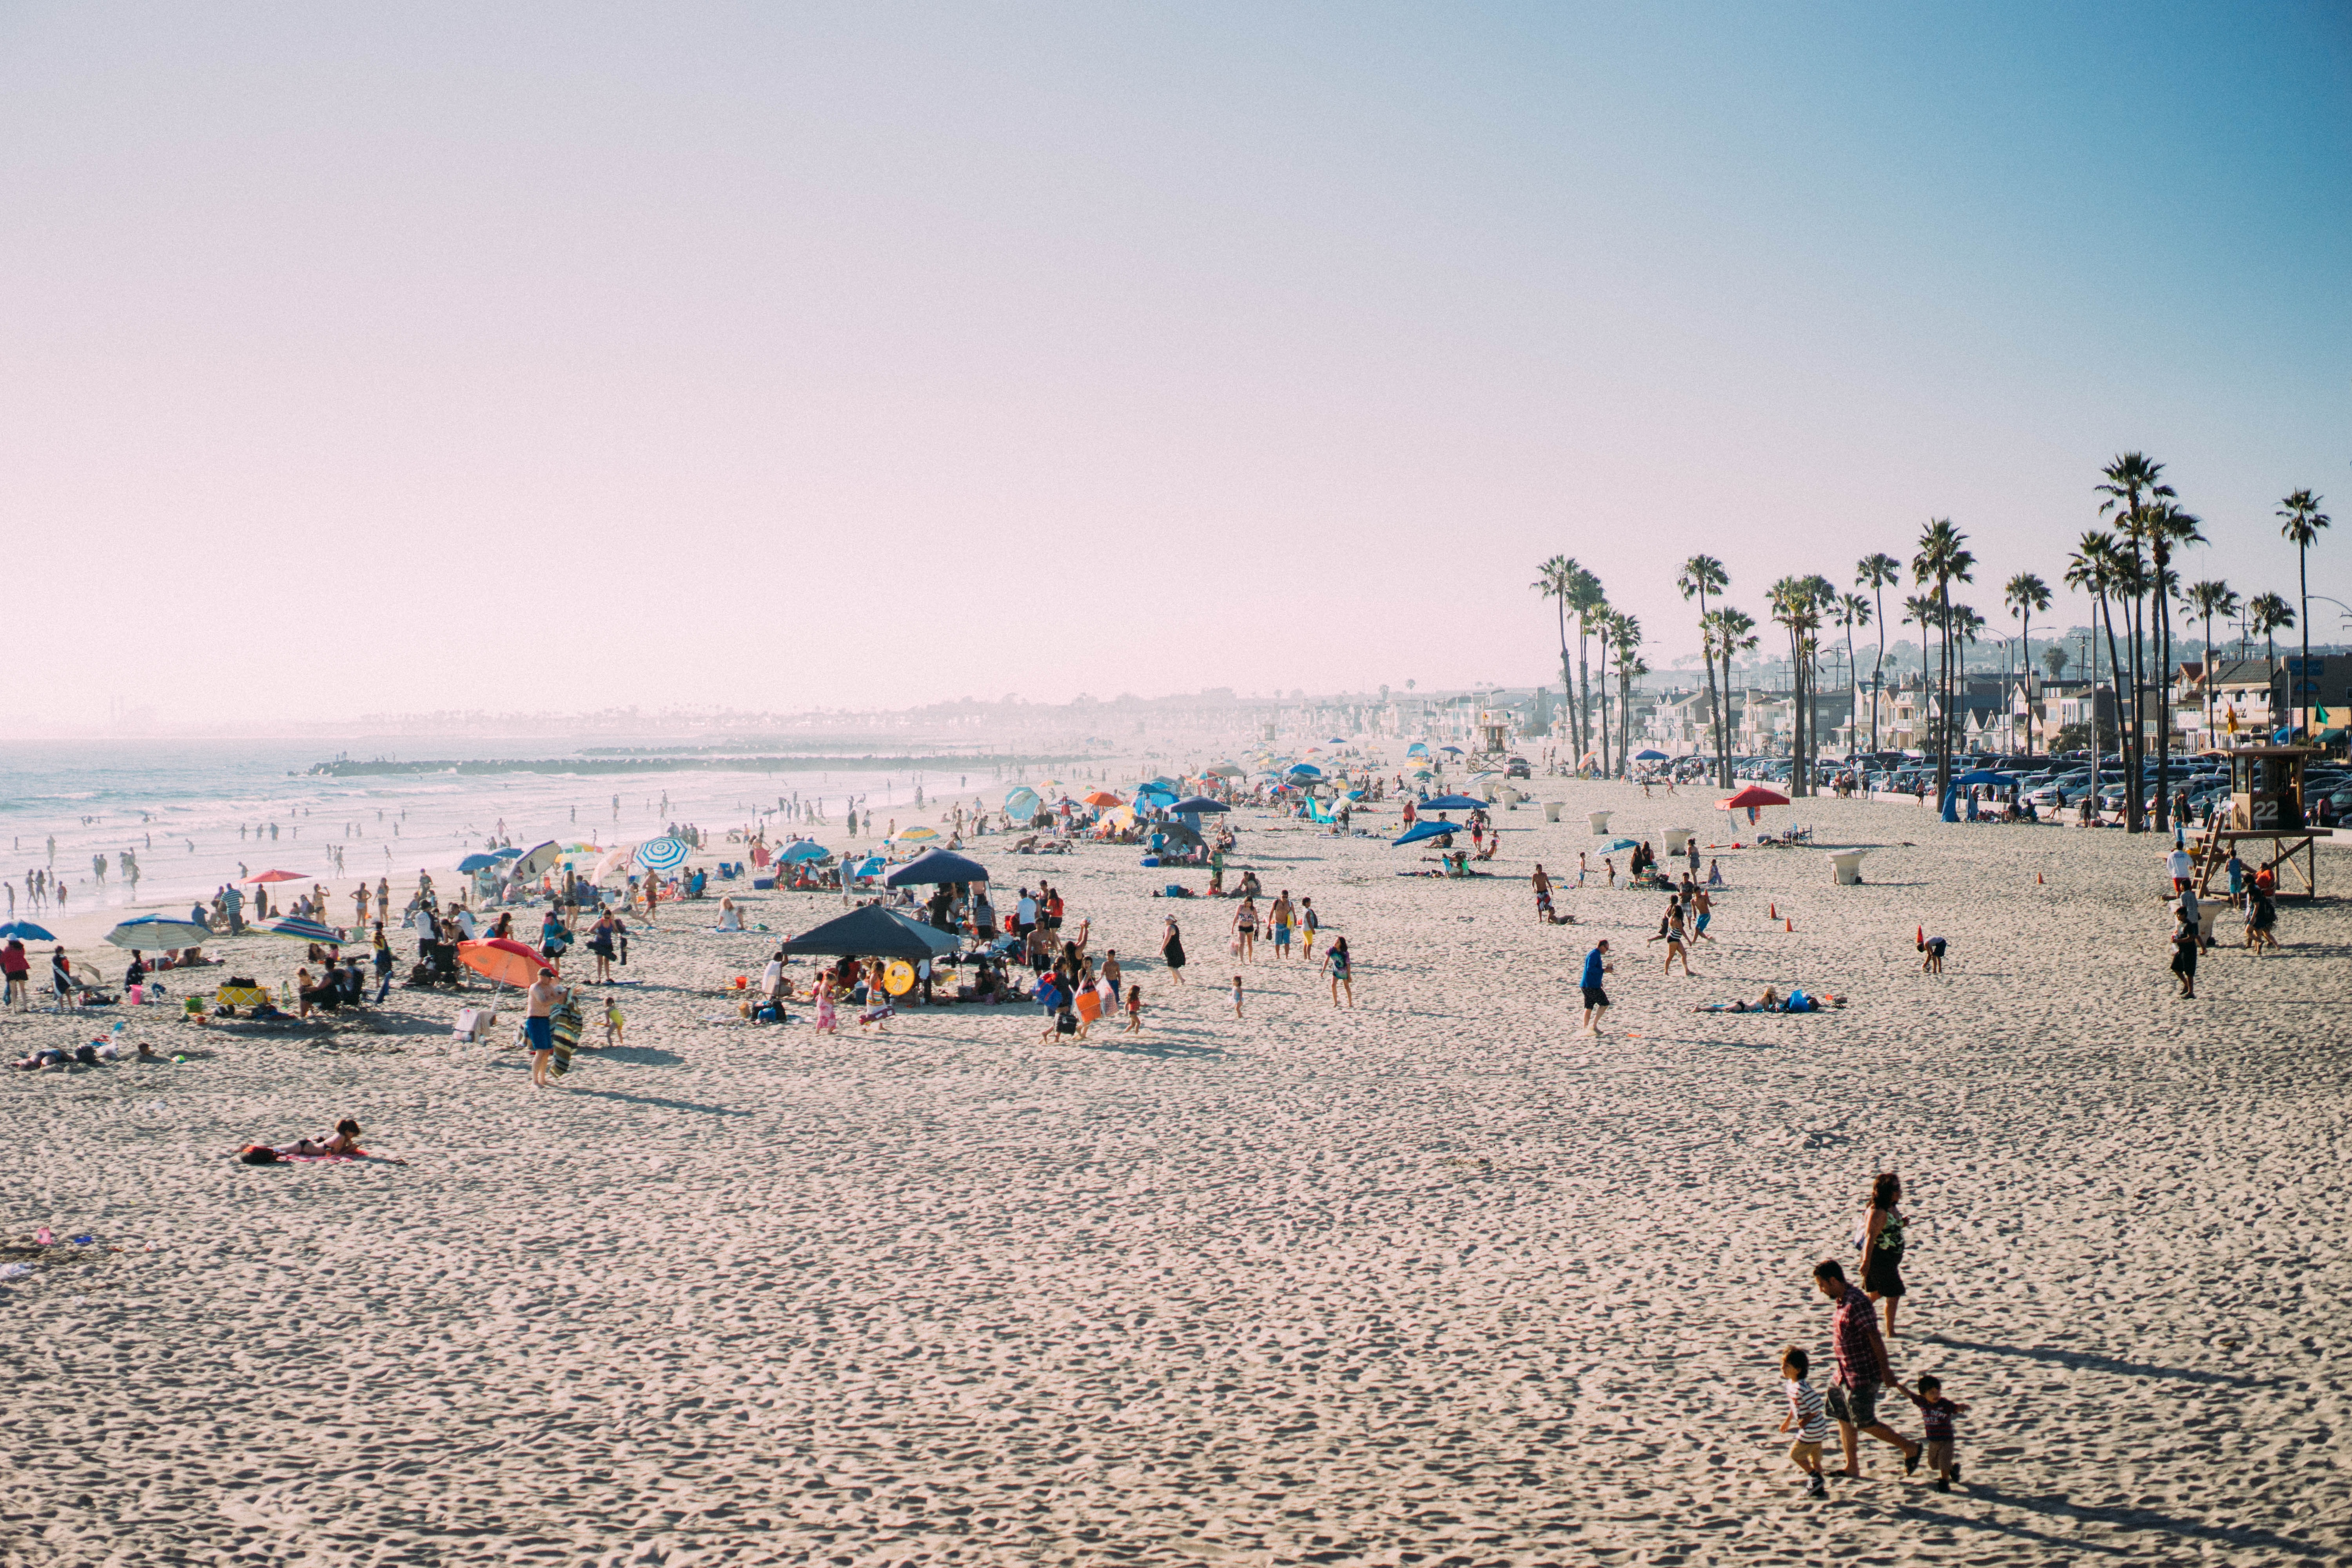 People enjoying the tropical sun, sea, and sand at a fairly crowded Newport Beach, CA